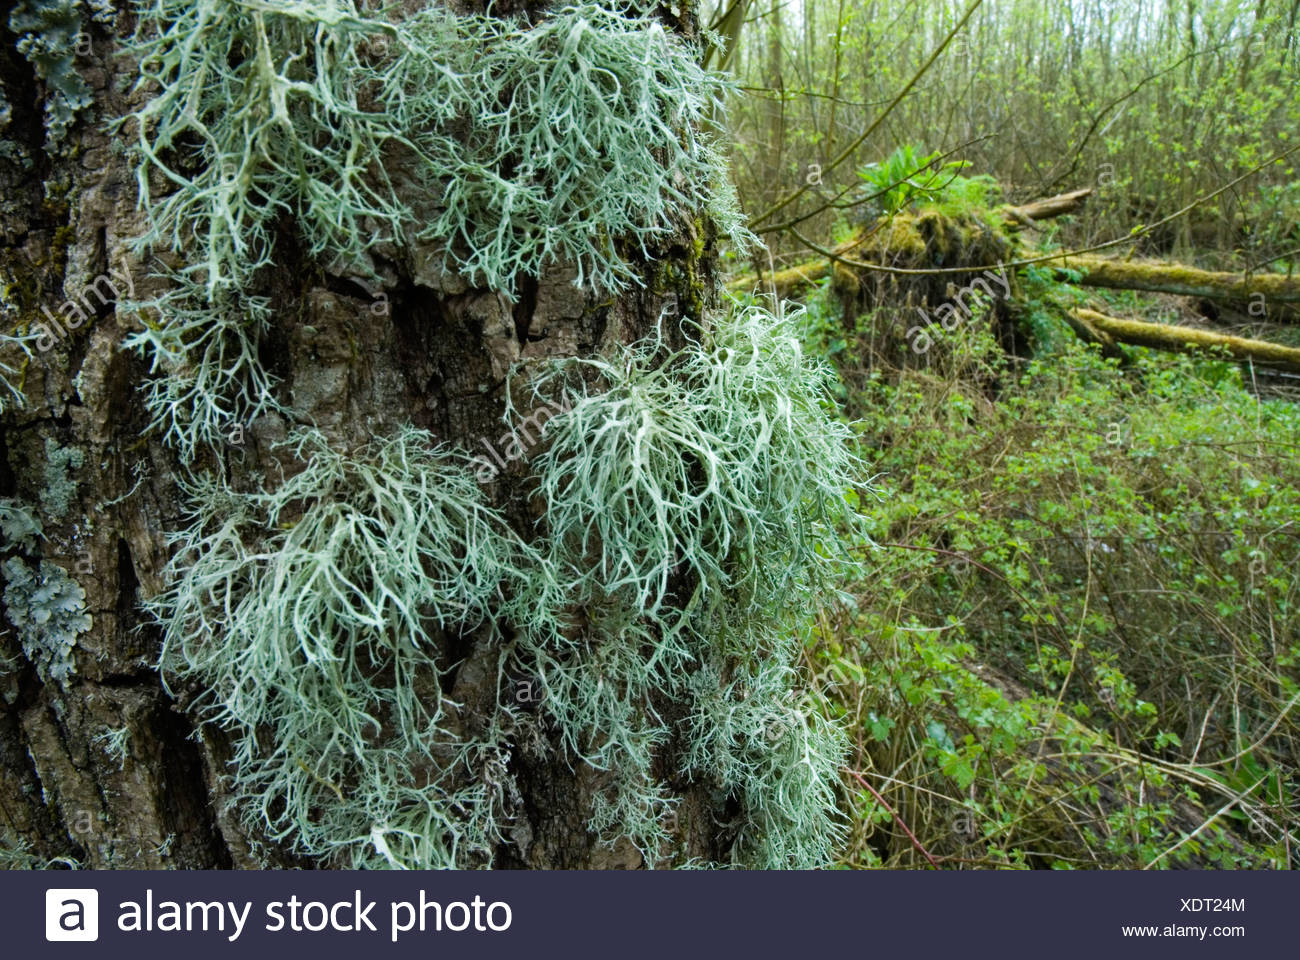 Rendiermos Op Boom Klein Profijt Lichens Growing On A Treetrunk In A Dutch Tidal Forest Stock Photo Alamy